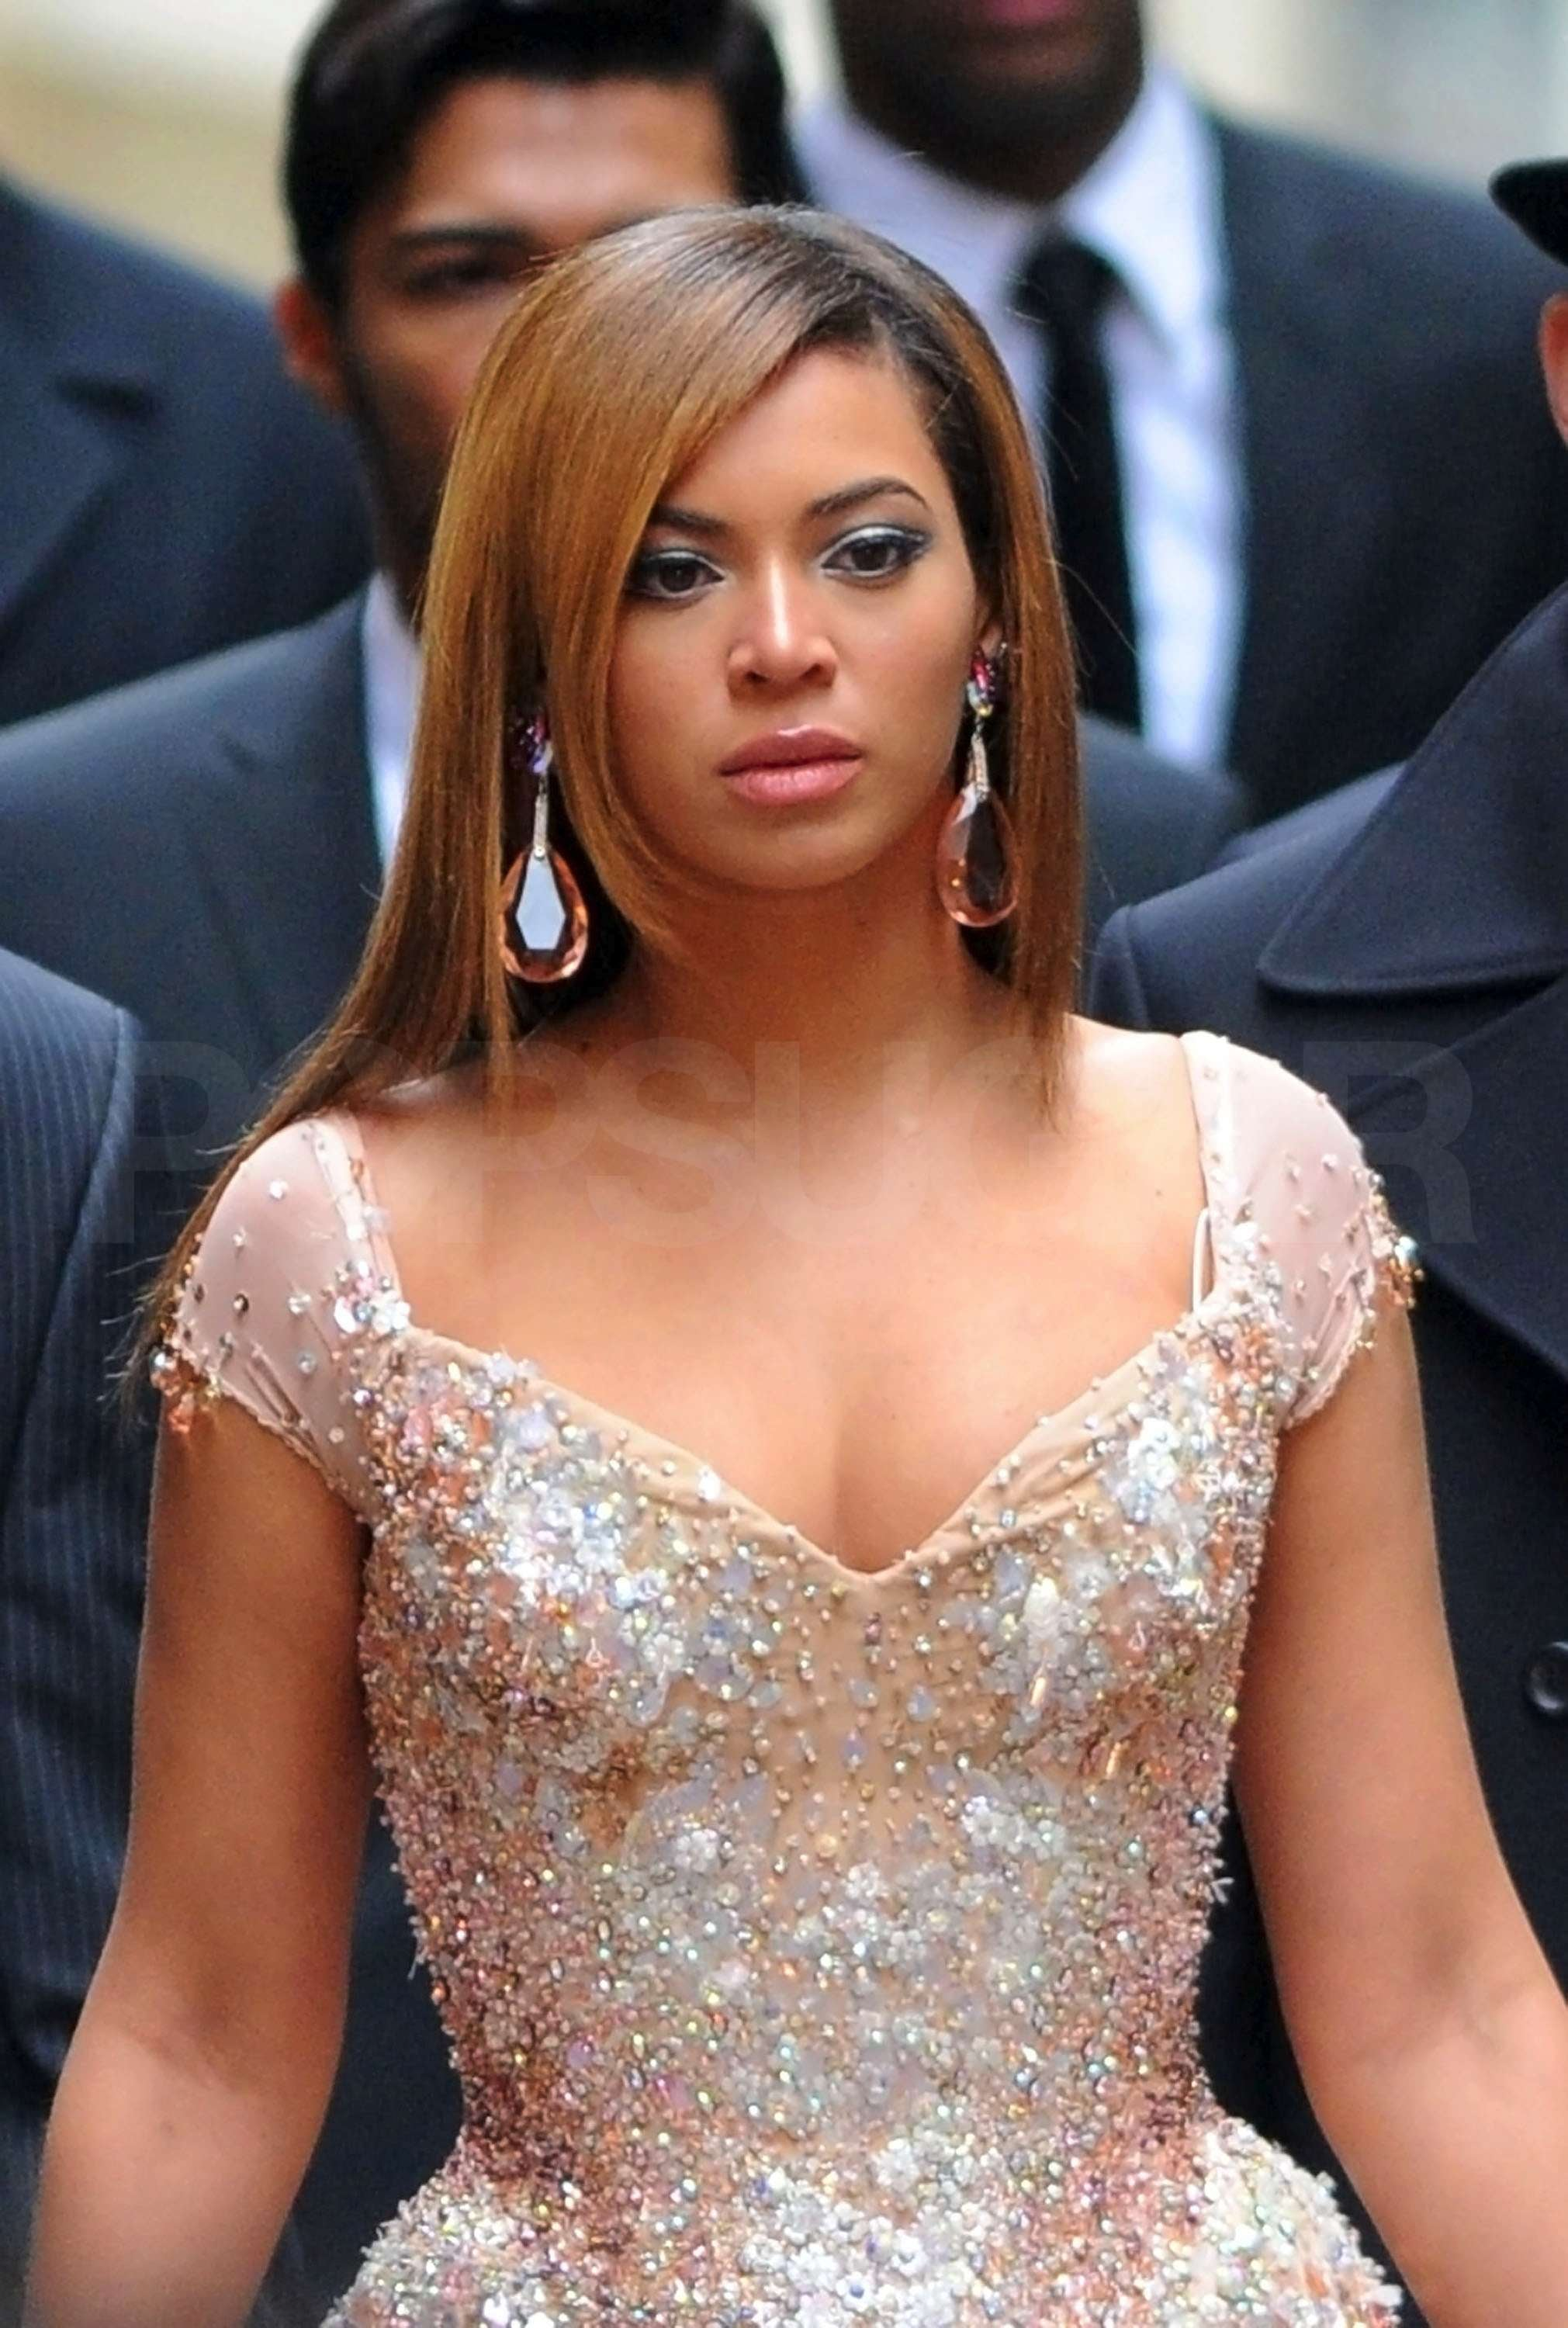 Beyonce Knowles Is a Big Bright Shining Star